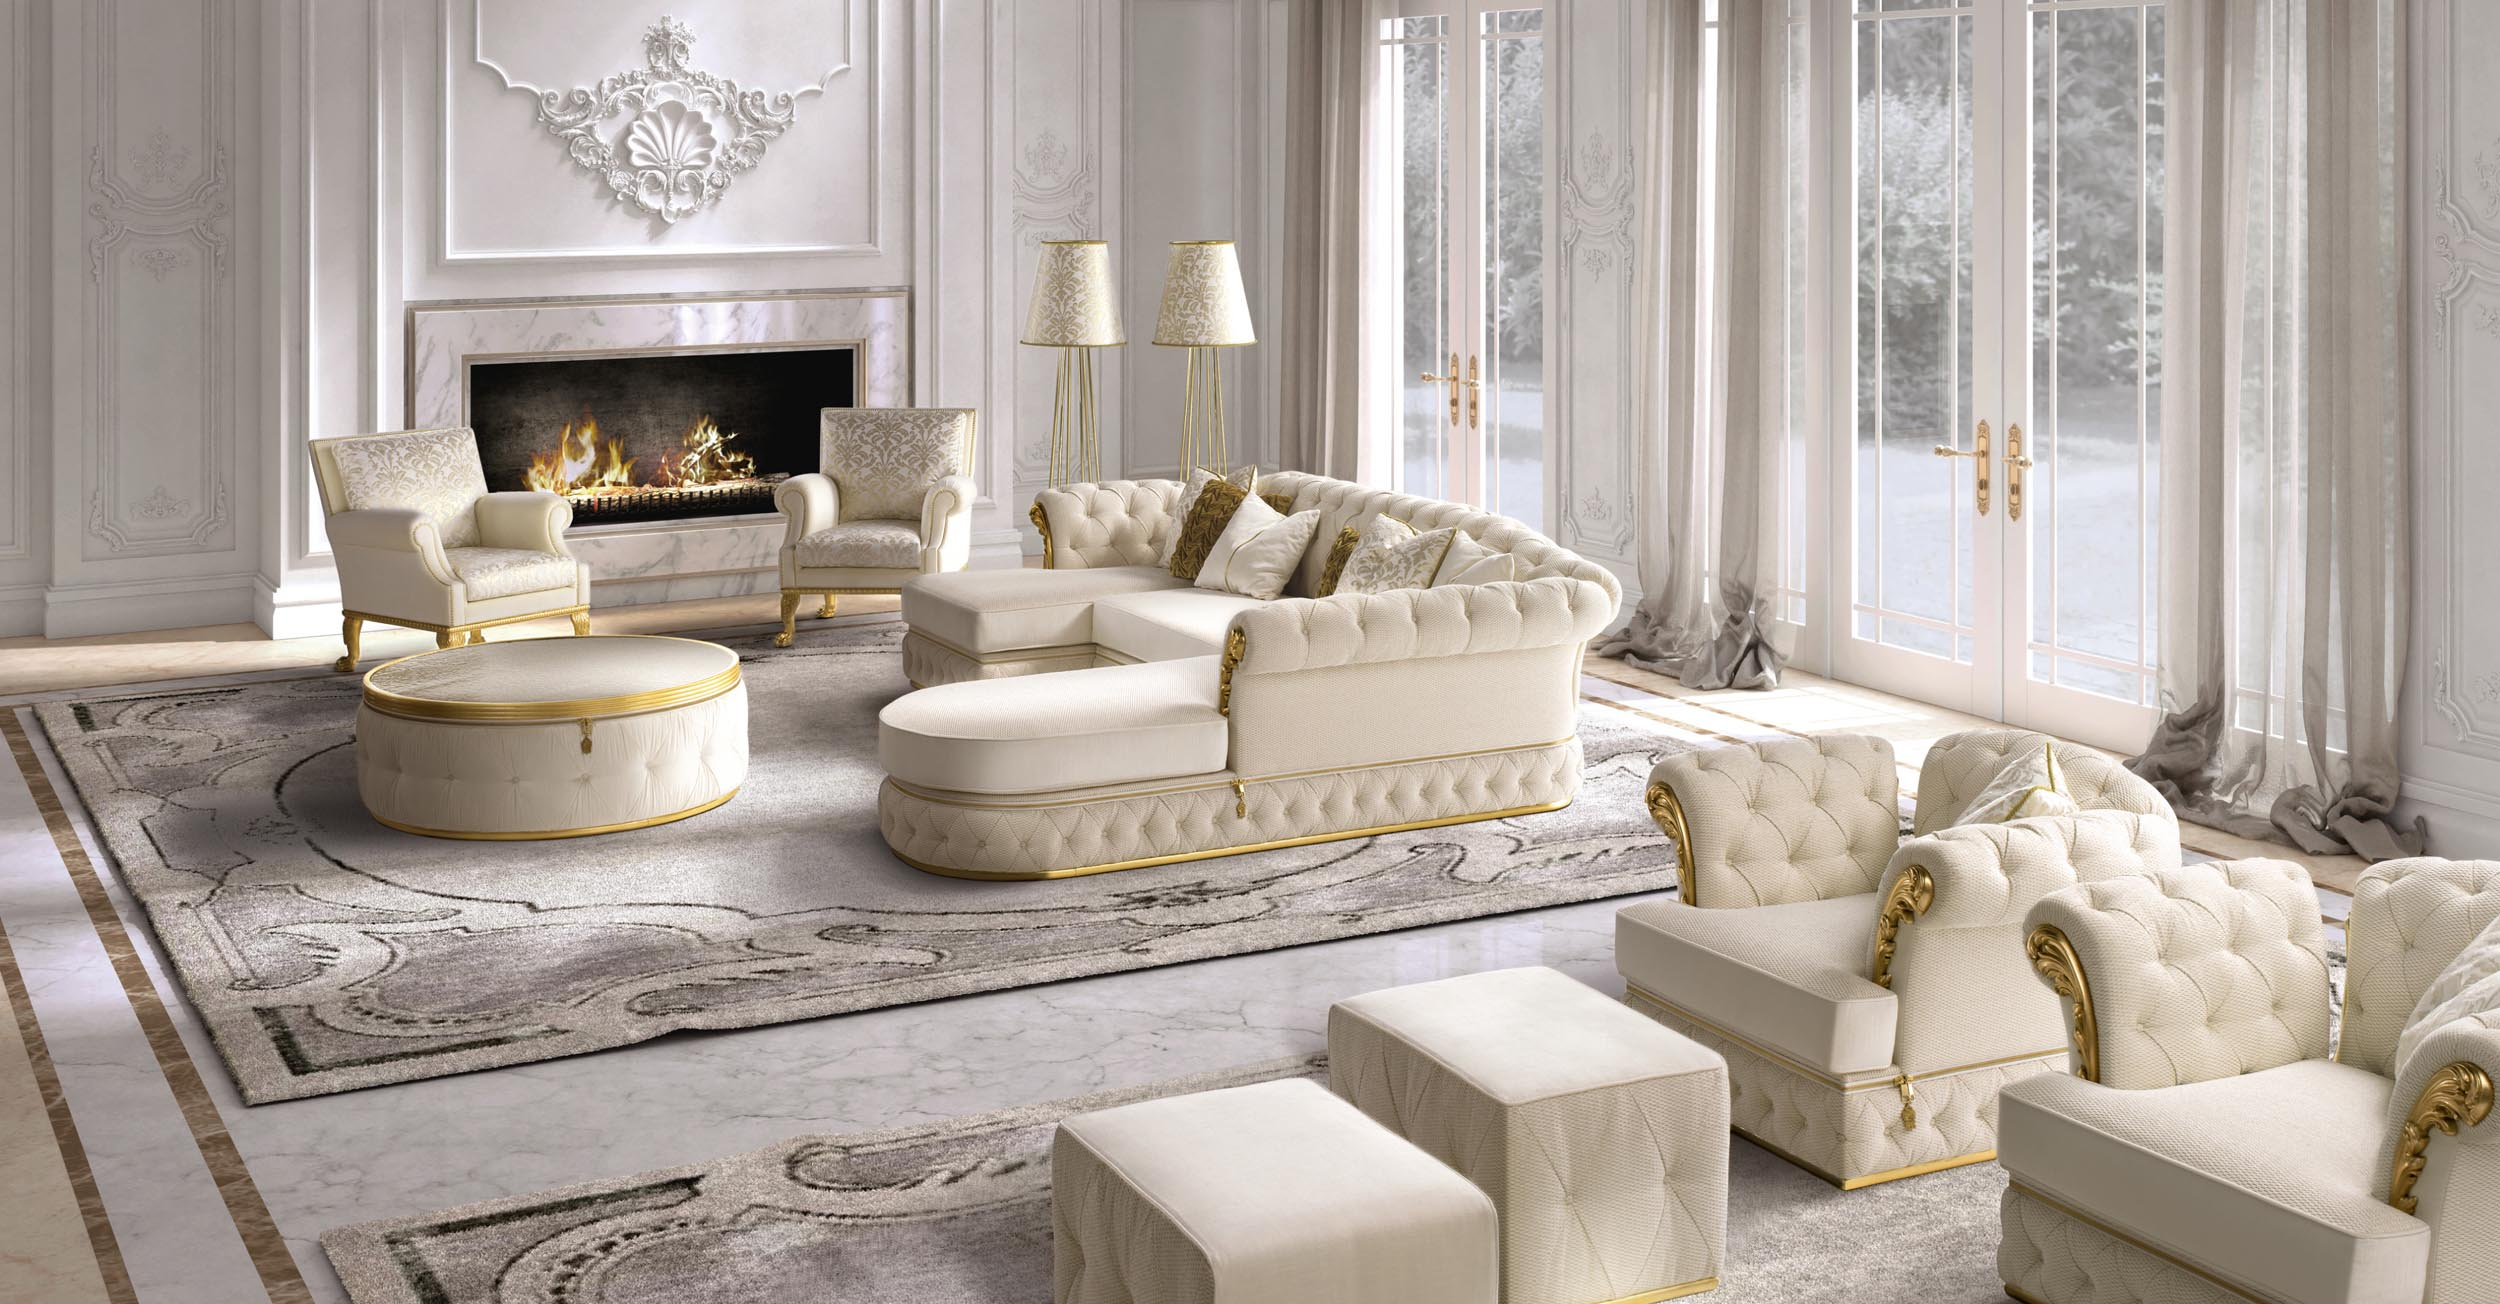 Goldoni collection